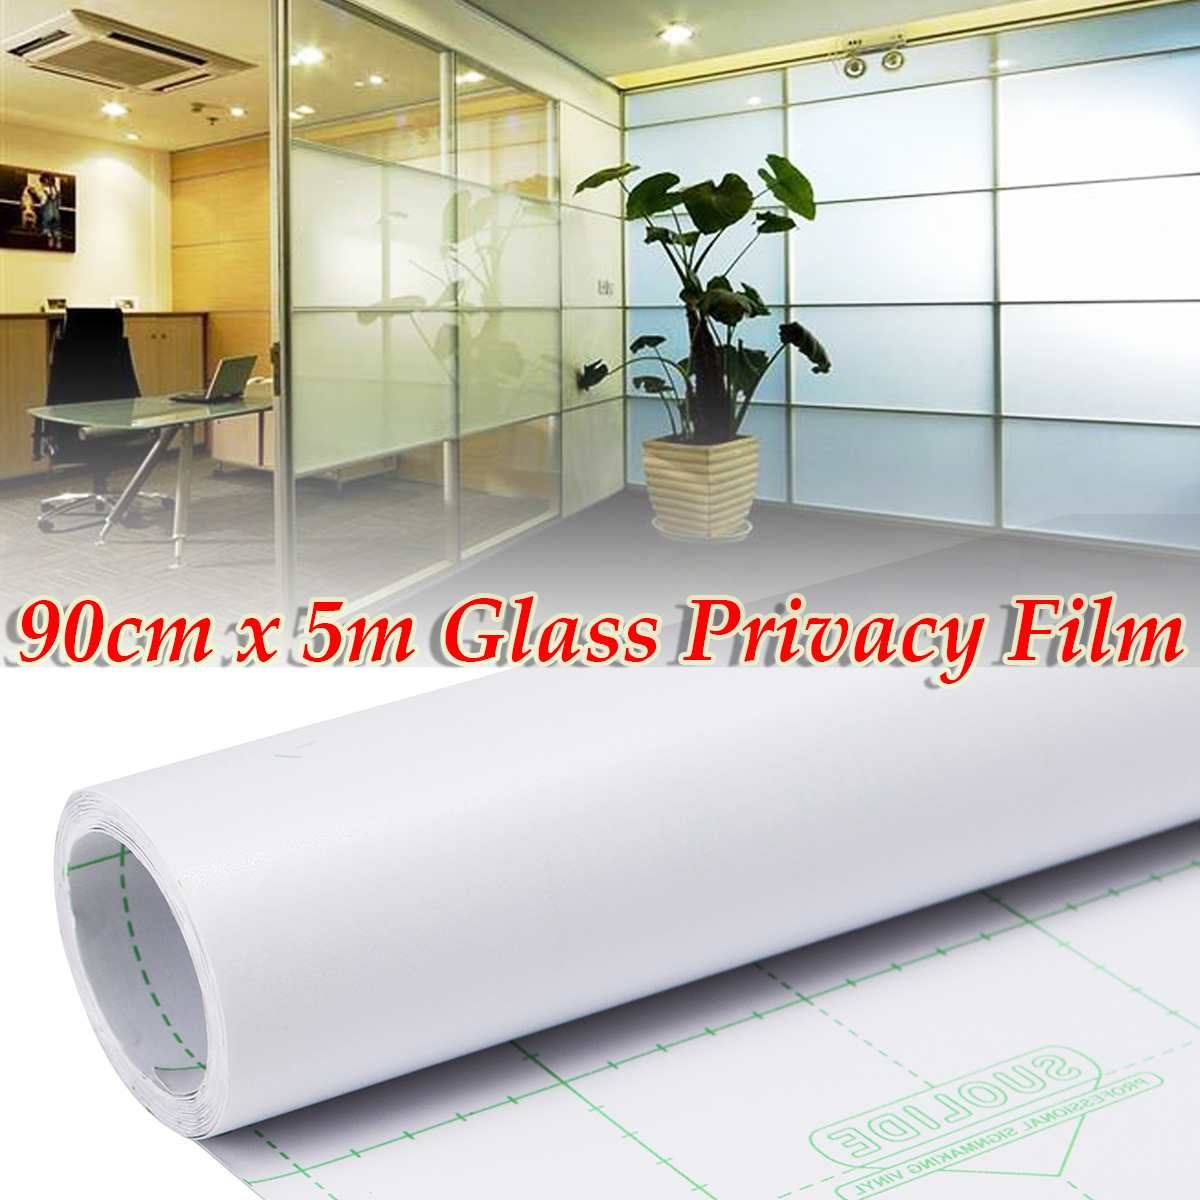 Window Film Privacy Tint Glass PVC Frosted Film for DIY Home/Office/Store Home Decor Bathroom Window Glass Tint 90cm x 500cm